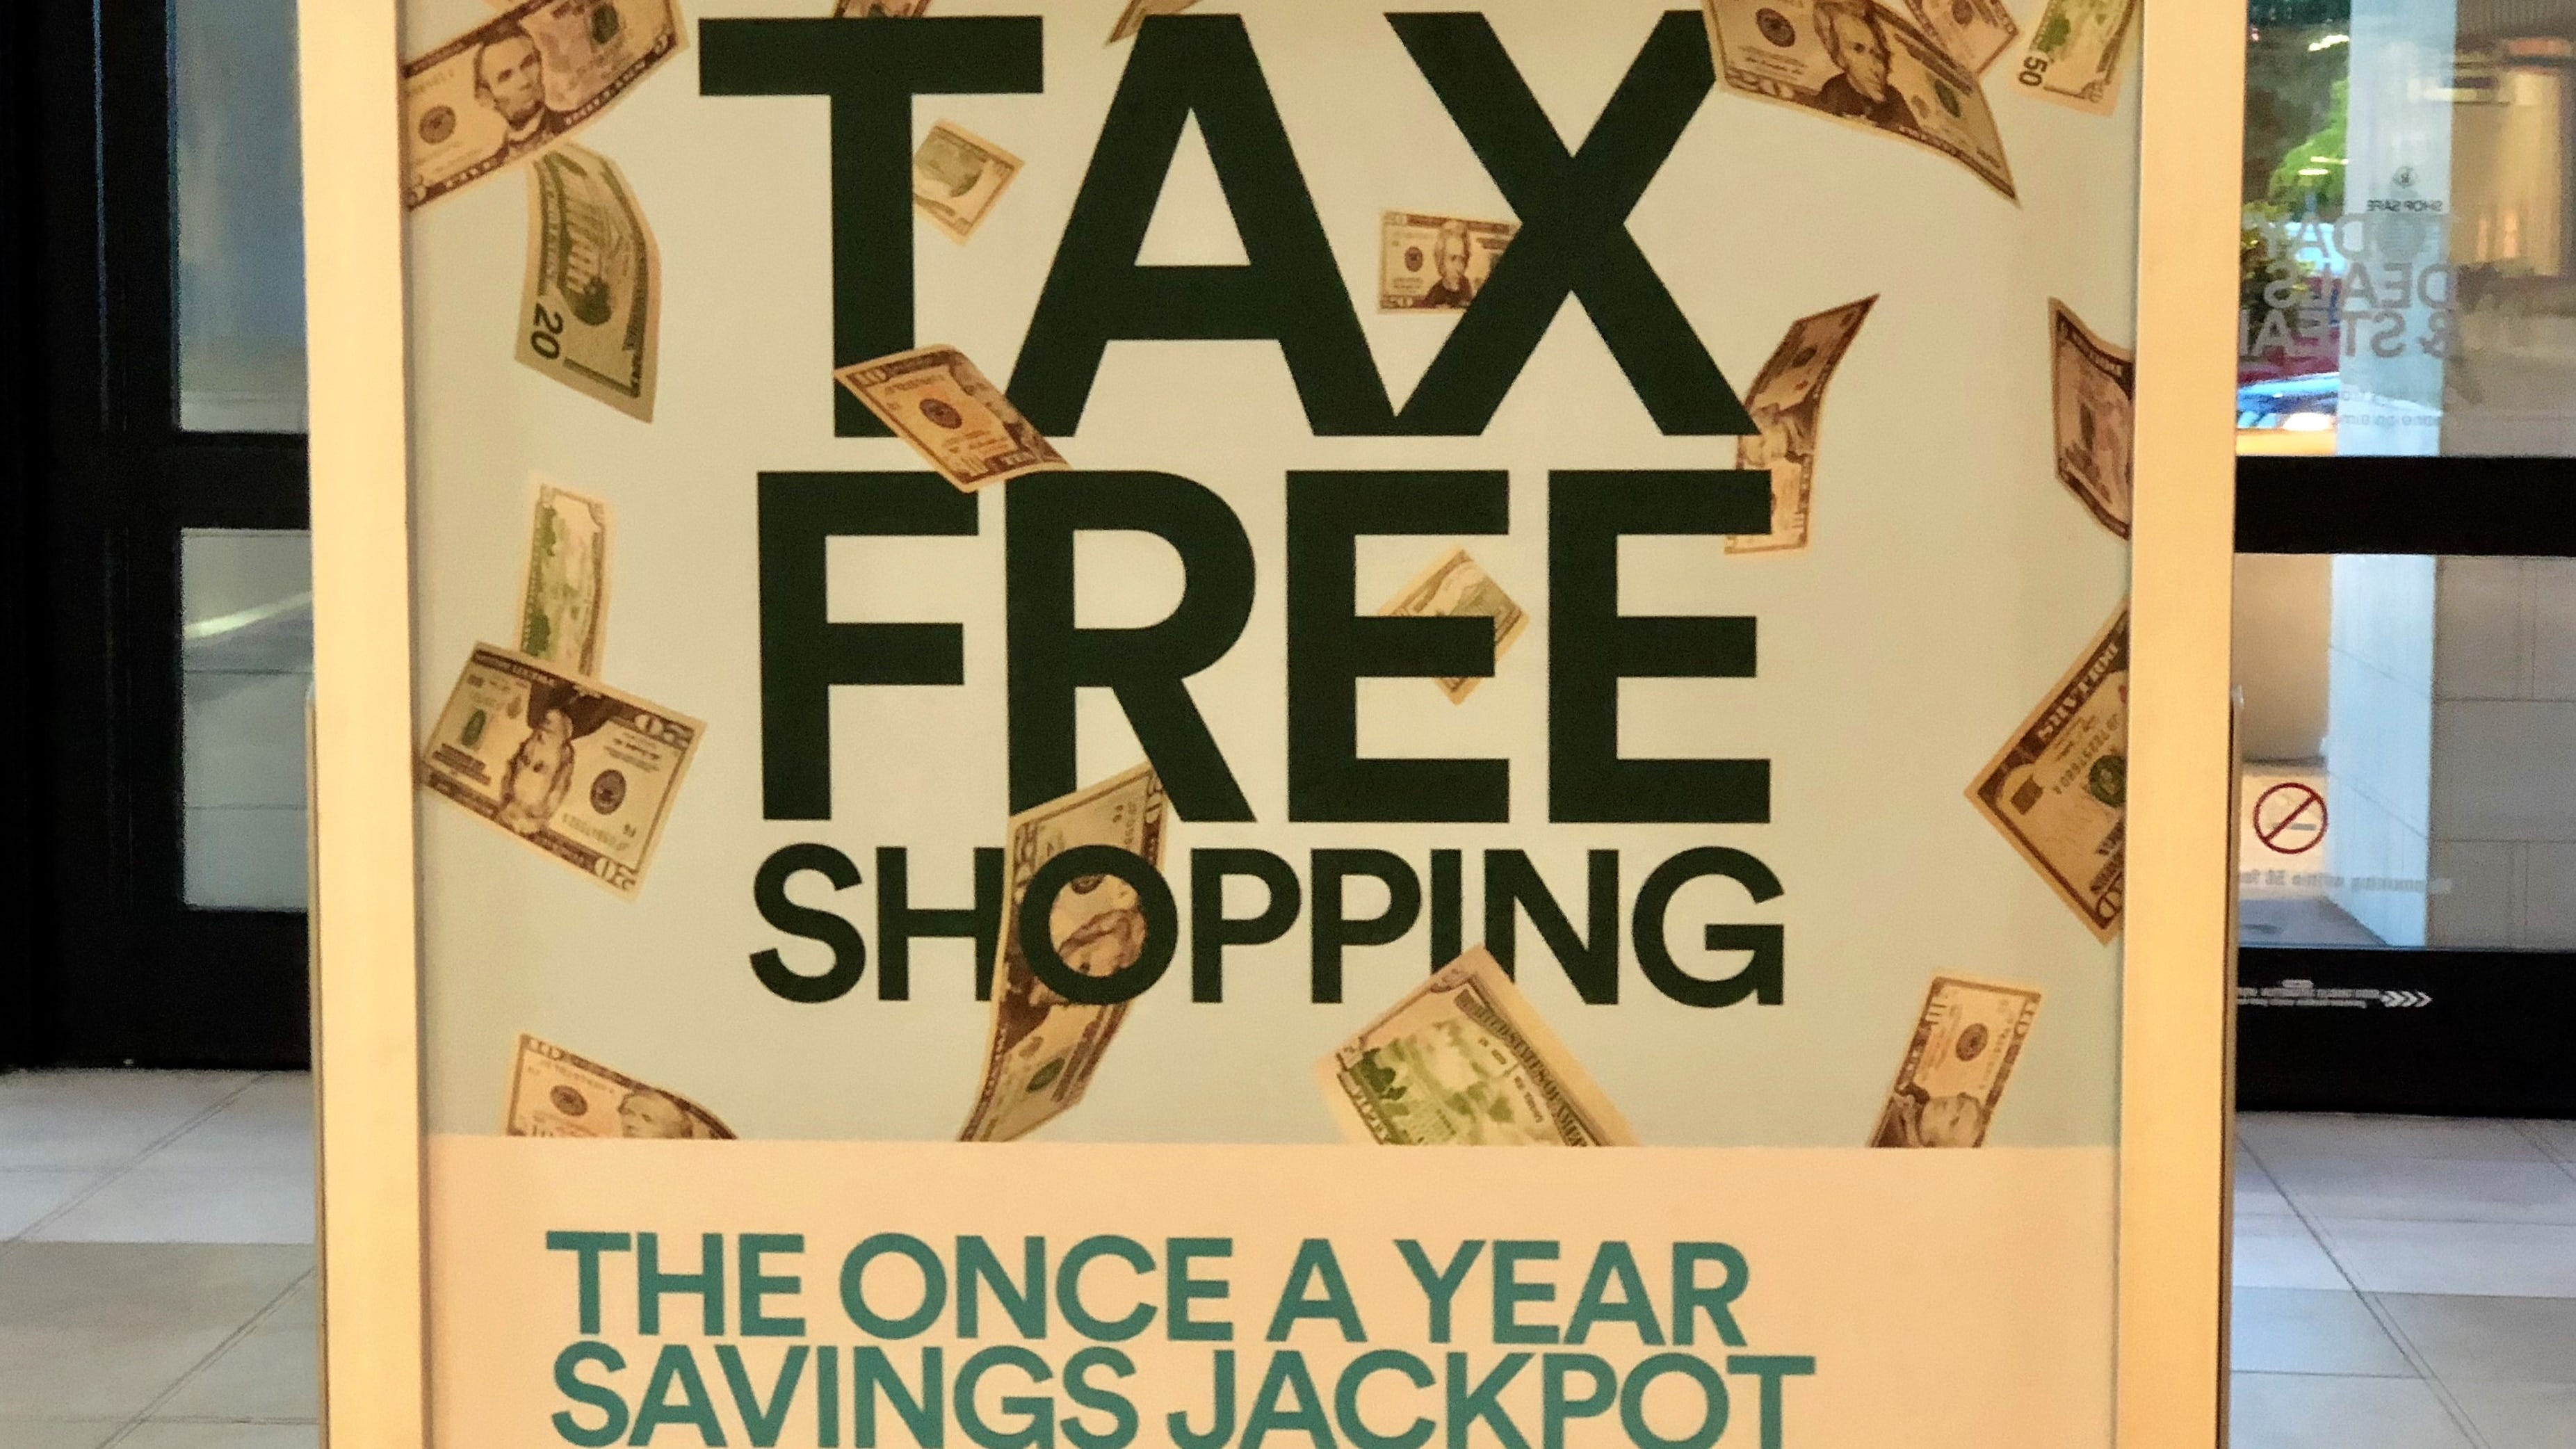 Saving some cash always feels good, but sales-tax holidays come with a price tag that consumers don't always see.